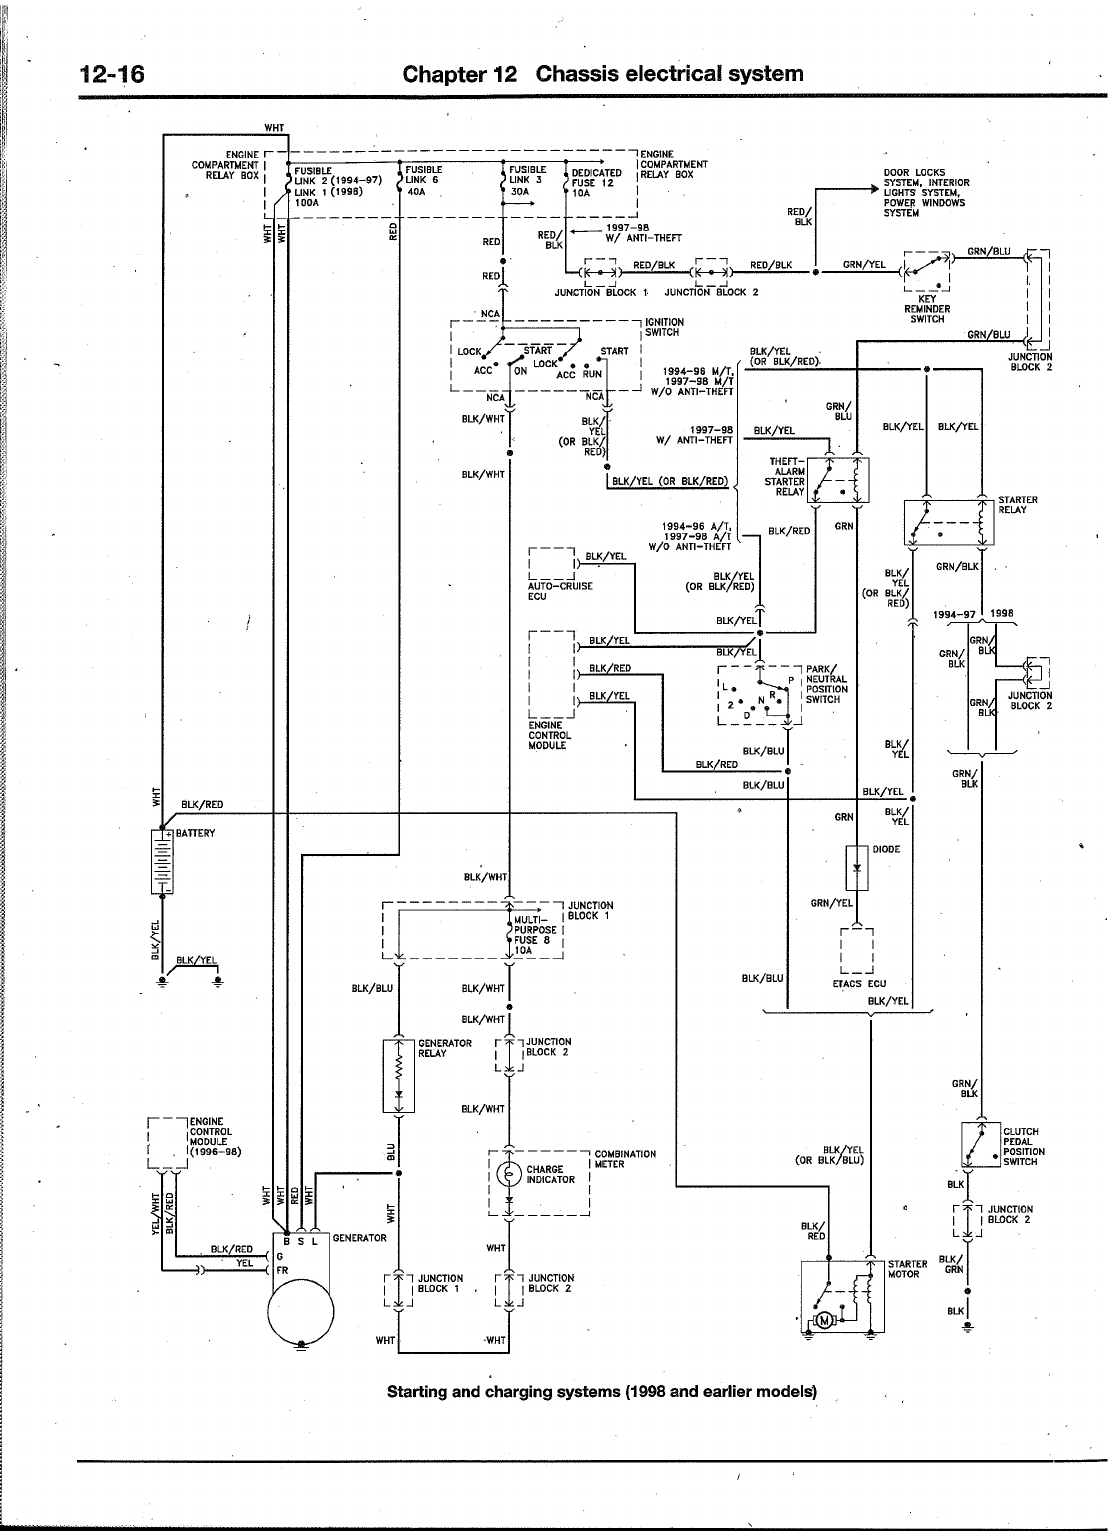 Mitsubishi Galant Wiring Diagram - Vyn.zaislunamai.uk • on regal wiring diagram, challenger wiring diagram, armada wiring diagram, avalon wiring diagram, mighty max wiring diagram, celica wiring diagram, forester wiring diagram, g6 wiring diagram, evo wiring diagram, van wiring diagram, yukon wiring diagram, model wiring diagram, fusion wiring diagram, versa wiring diagram, es 350 wiring diagram, traverse wiring diagram, legacy wiring diagram, lesabre wiring diagram, impreza wiring diagram, matrix wiring diagram,